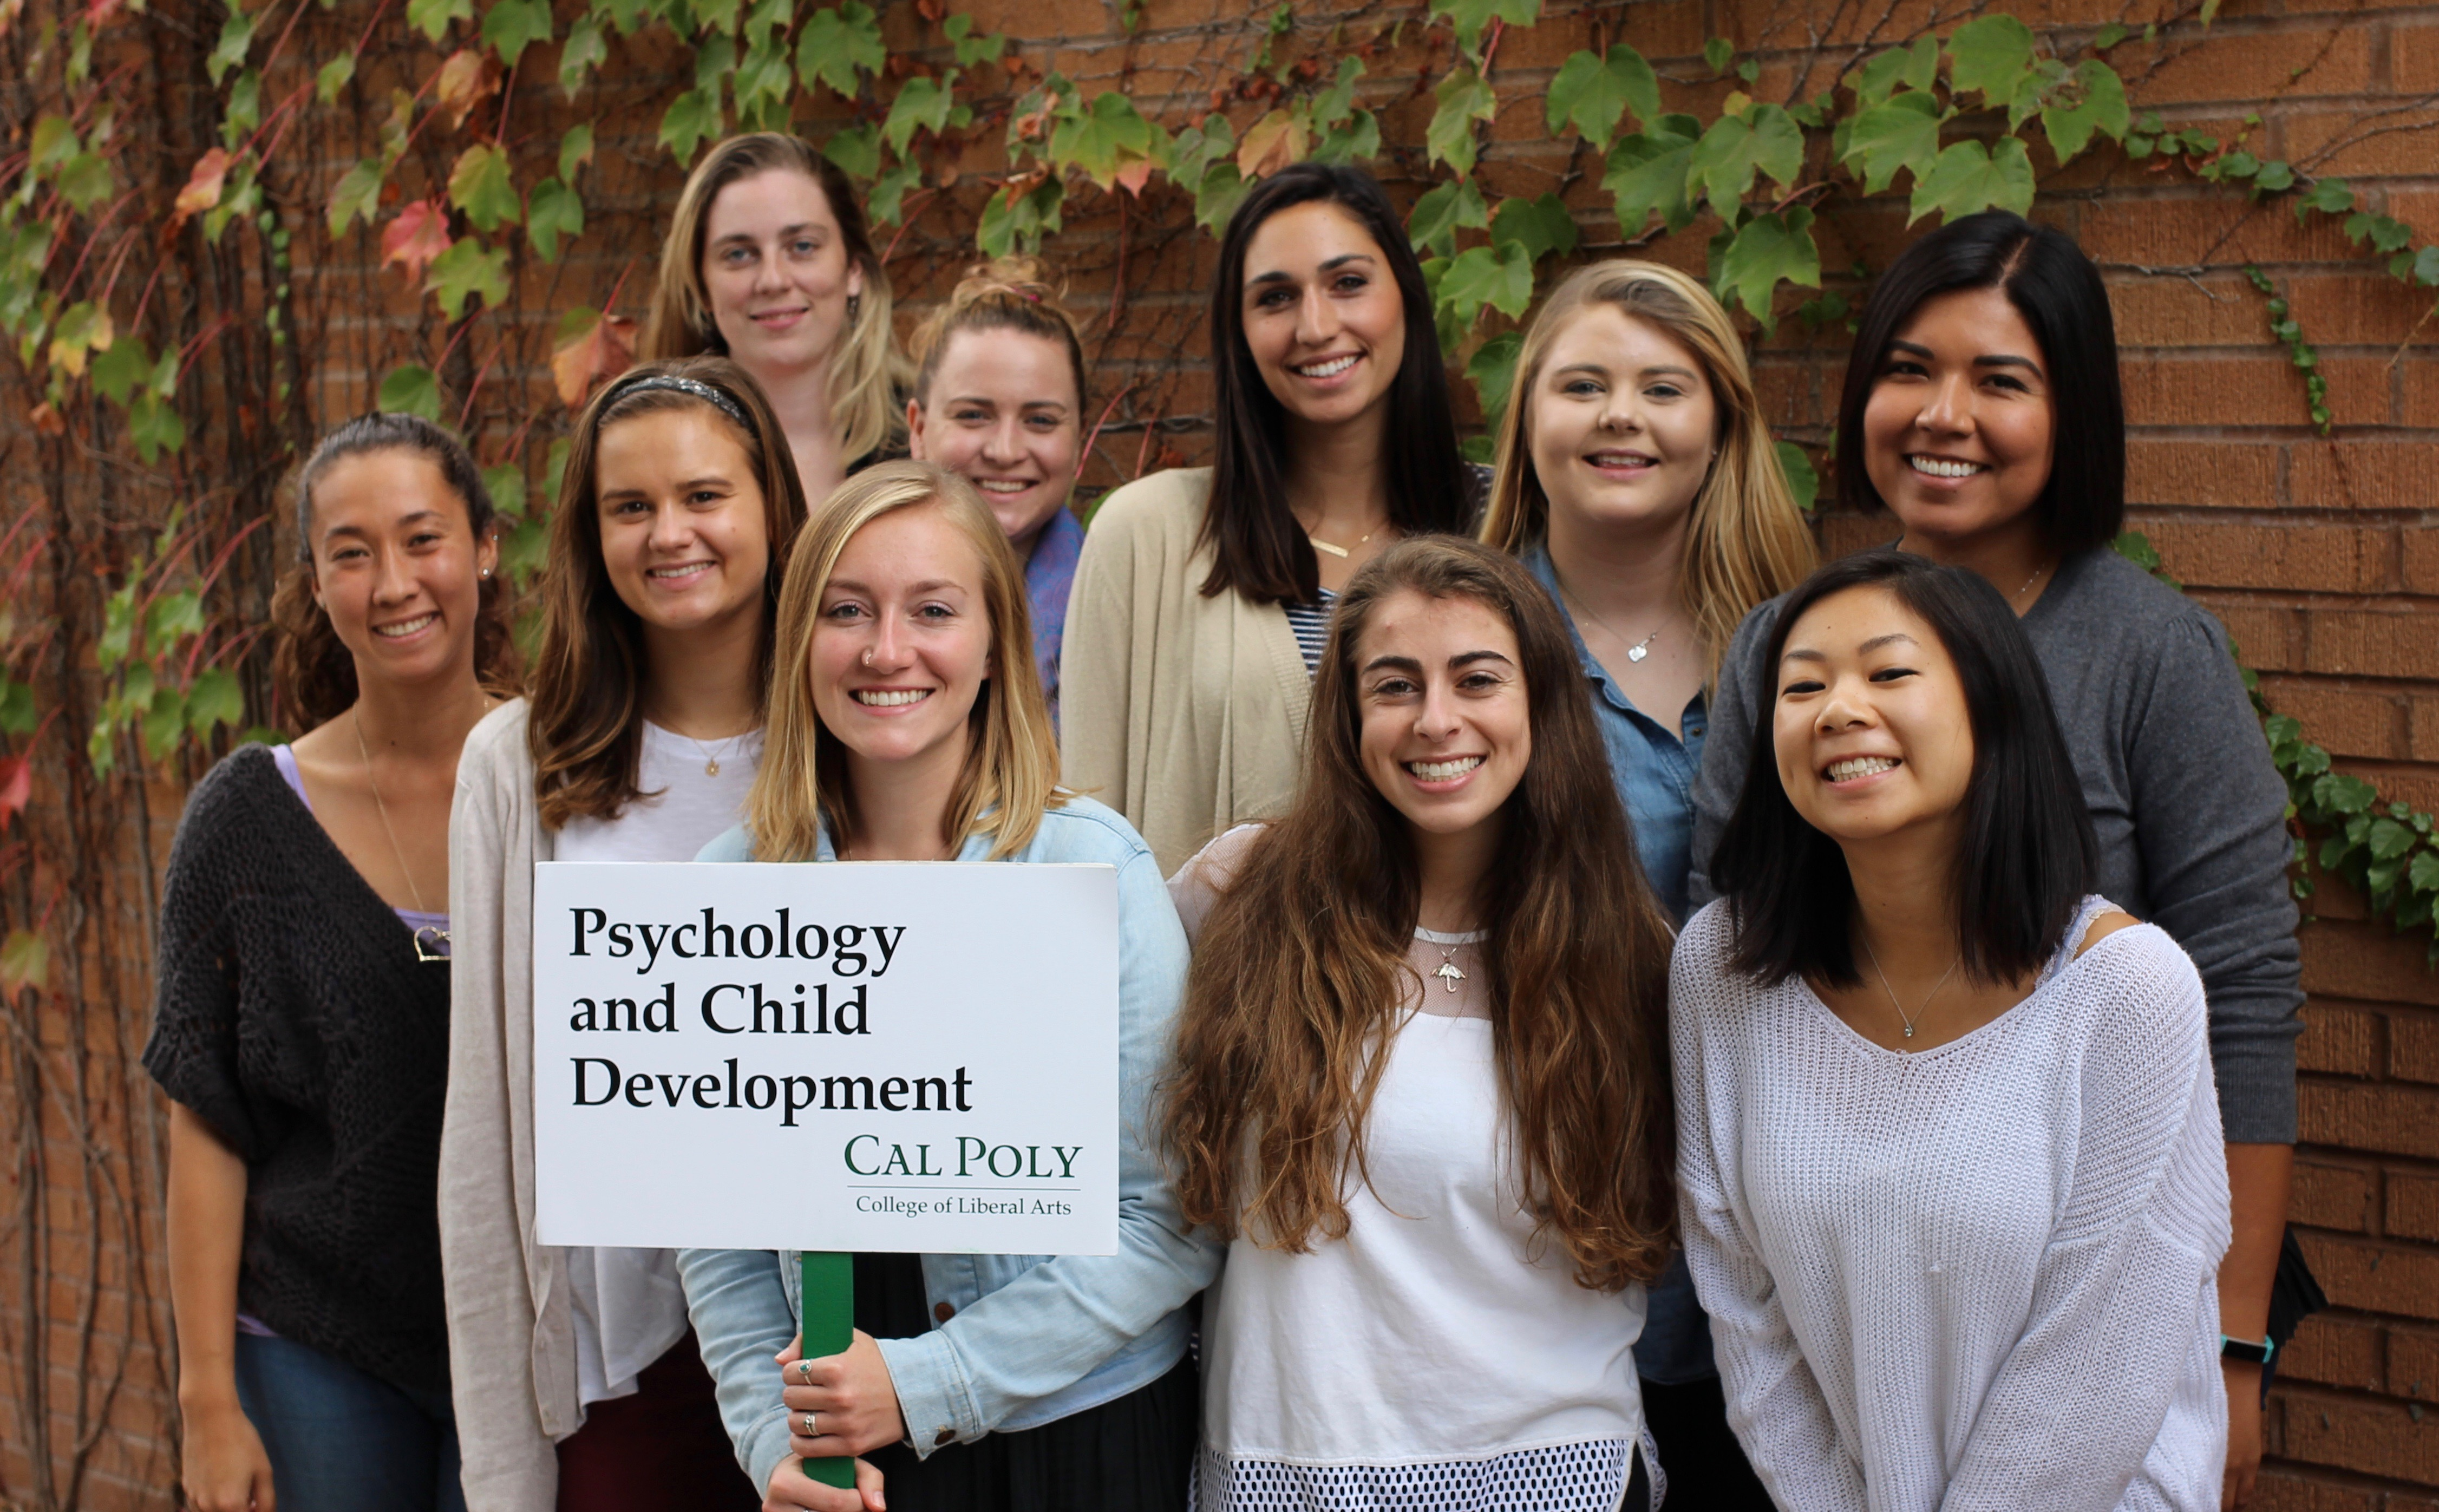 Cal Poly Psychology & Child Development Student Advisory Committee 2015-16